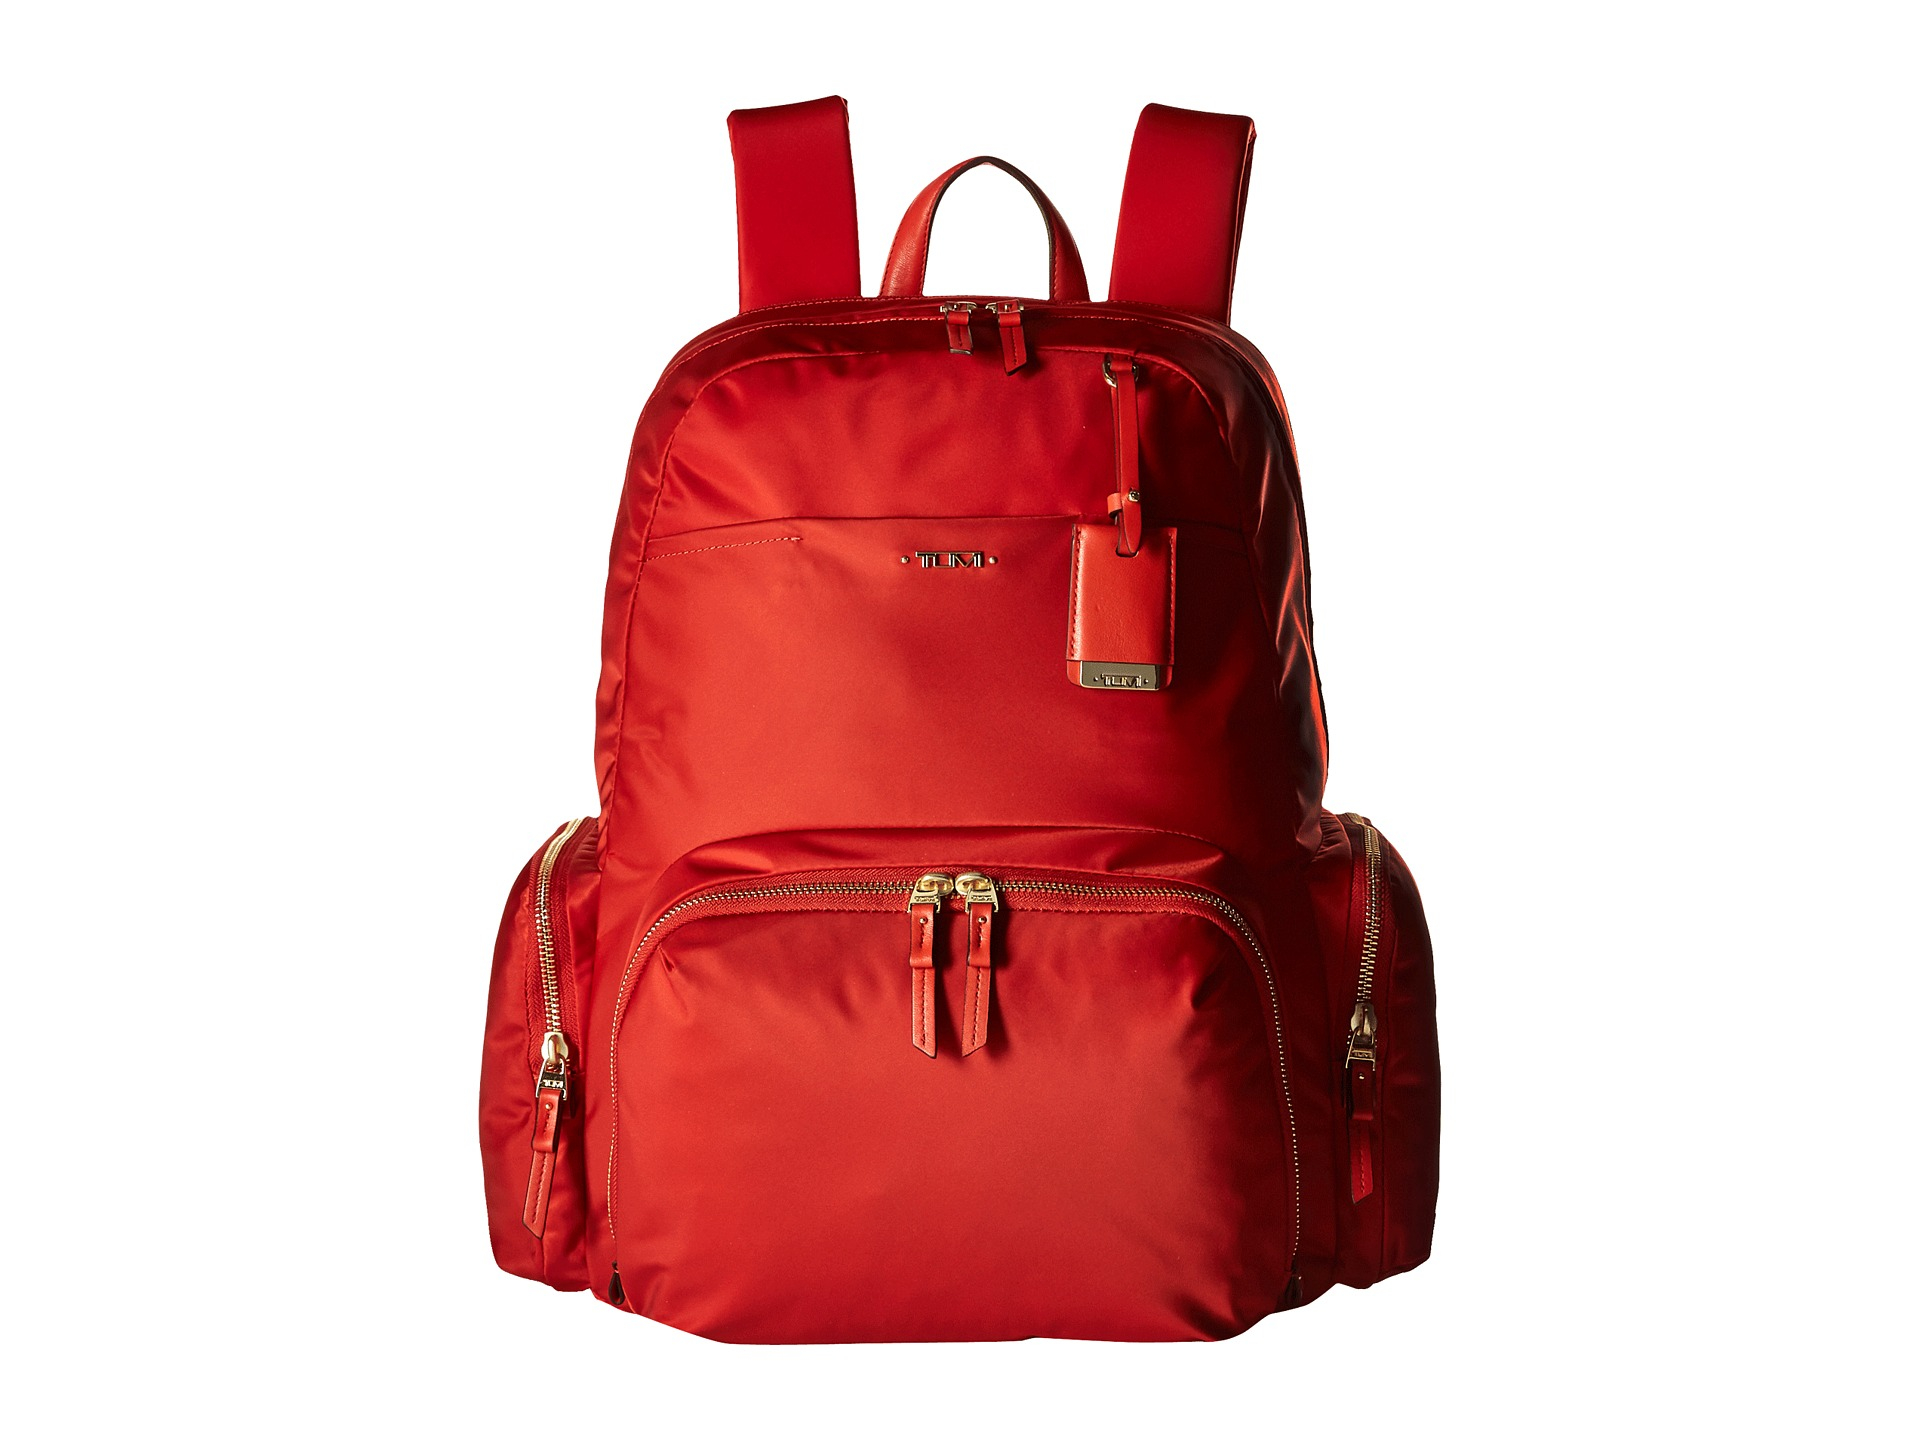 Tumi Voyageur - Calais Backpack in Red | Lyst